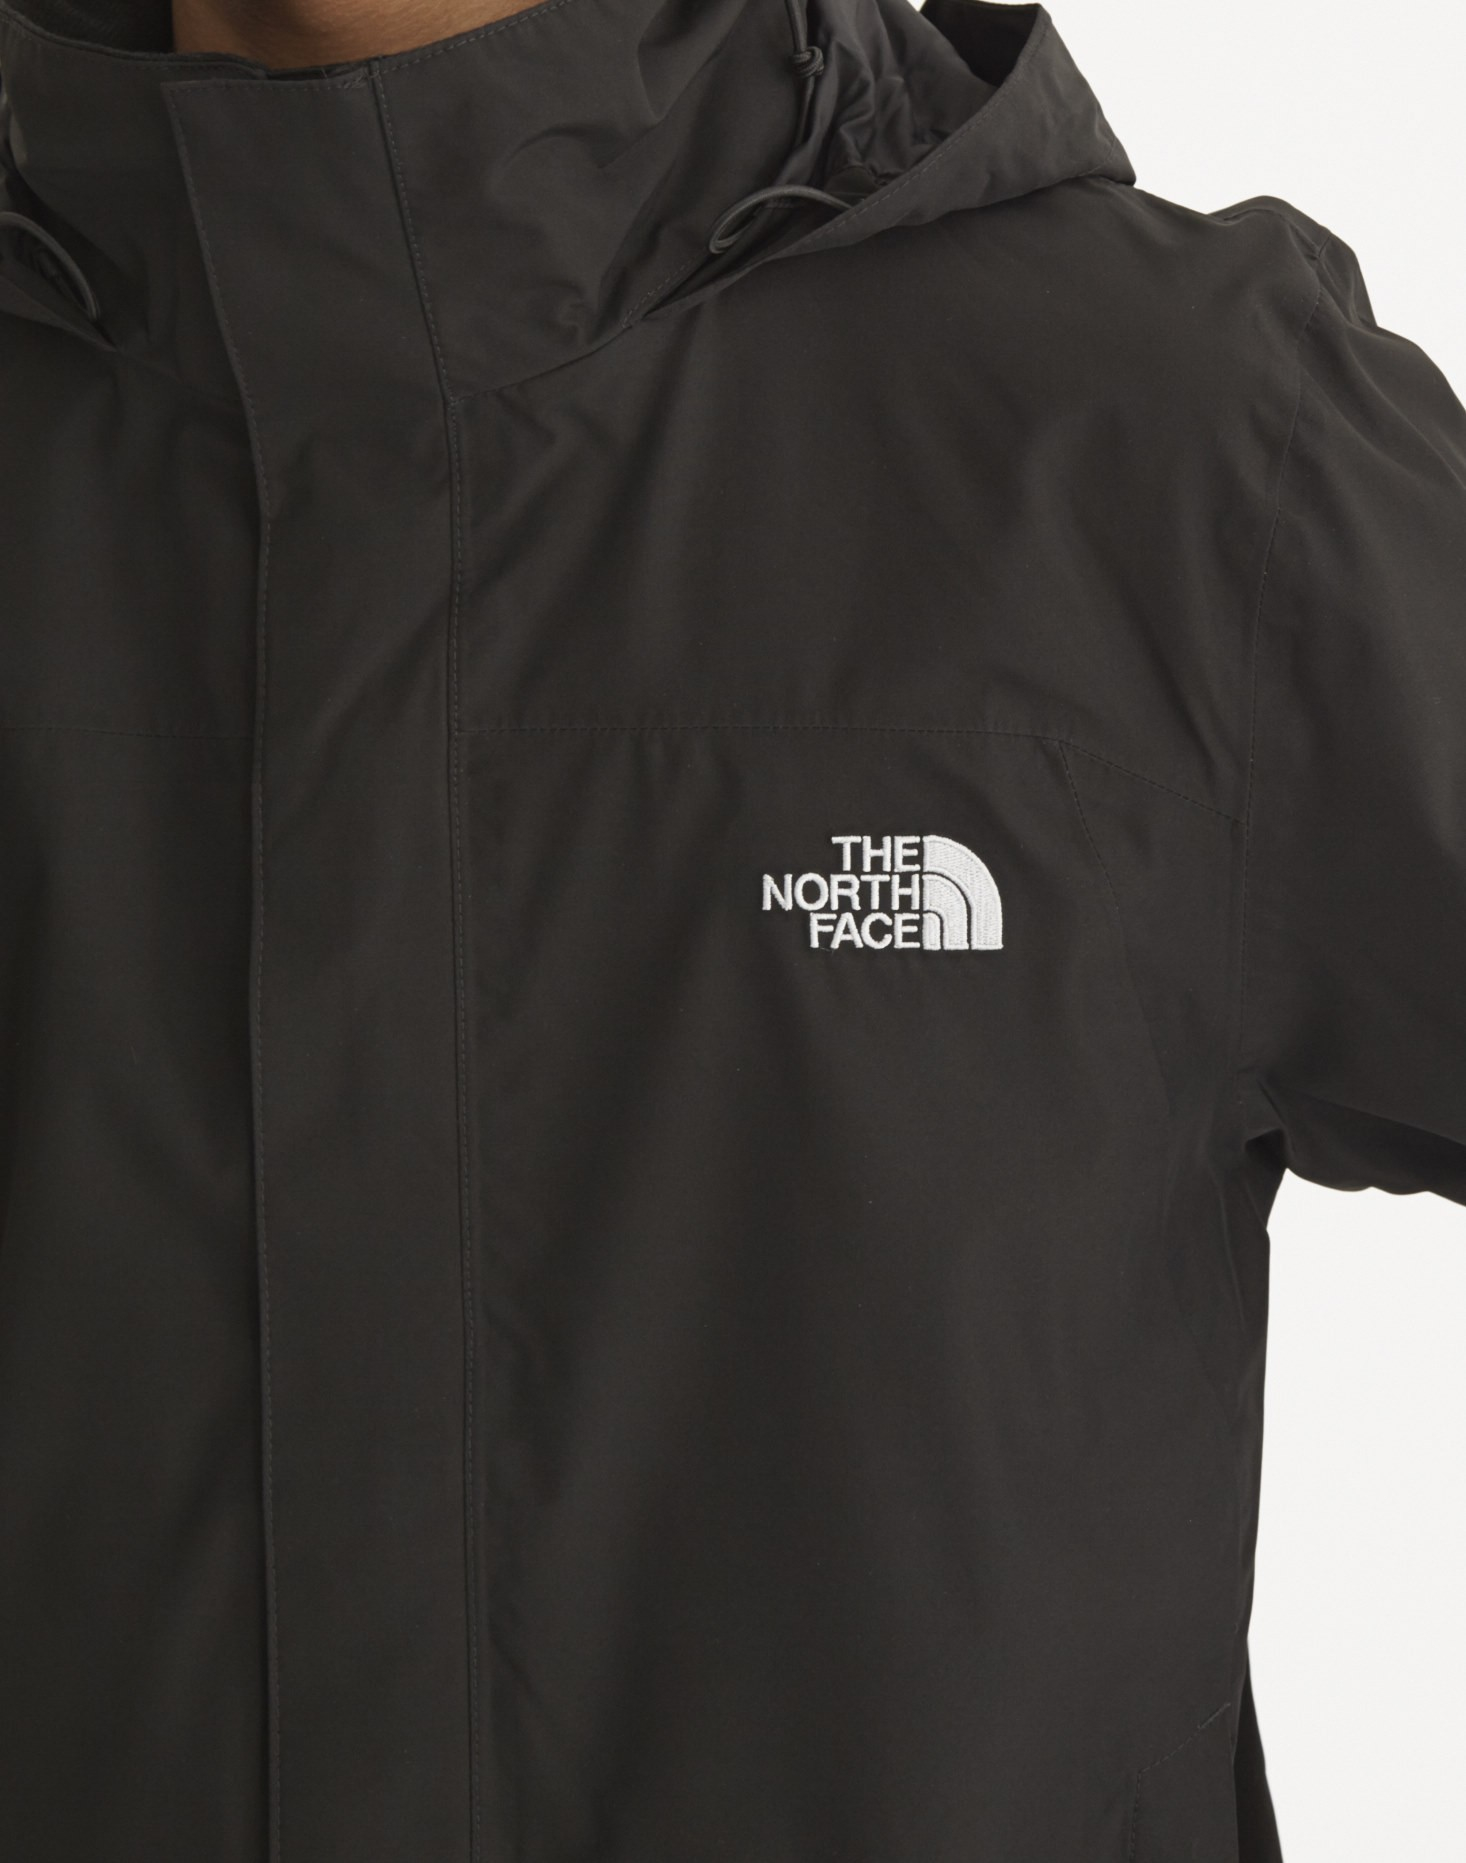 454c8cf80ffd Lyst - The North Face Sangro Water-Resistant Jacket in Black for Men